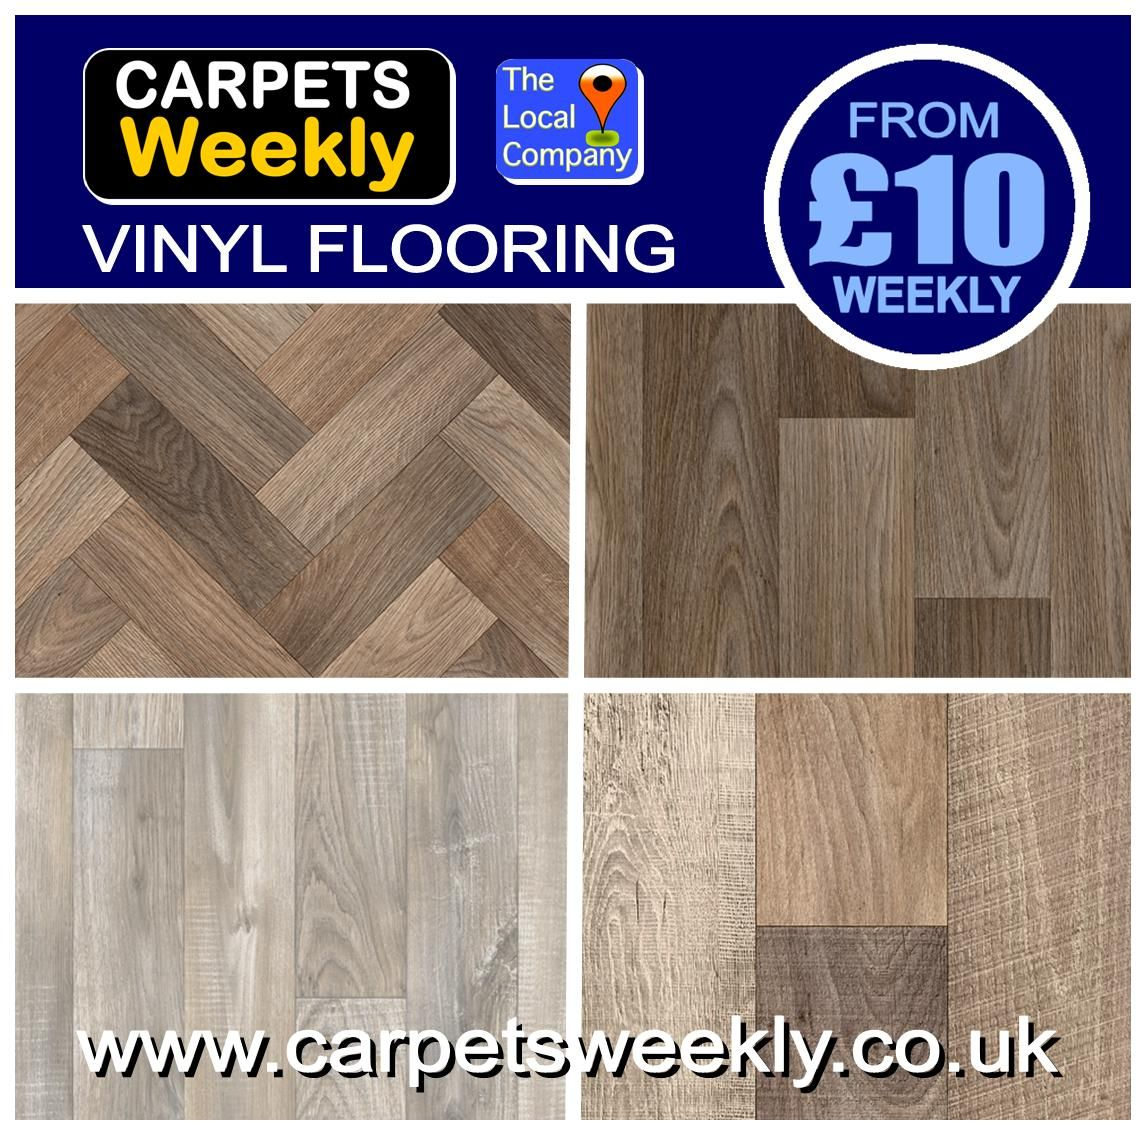 VINYL FLOORING FROM £10 A WEEK CARPETS WEEKLY